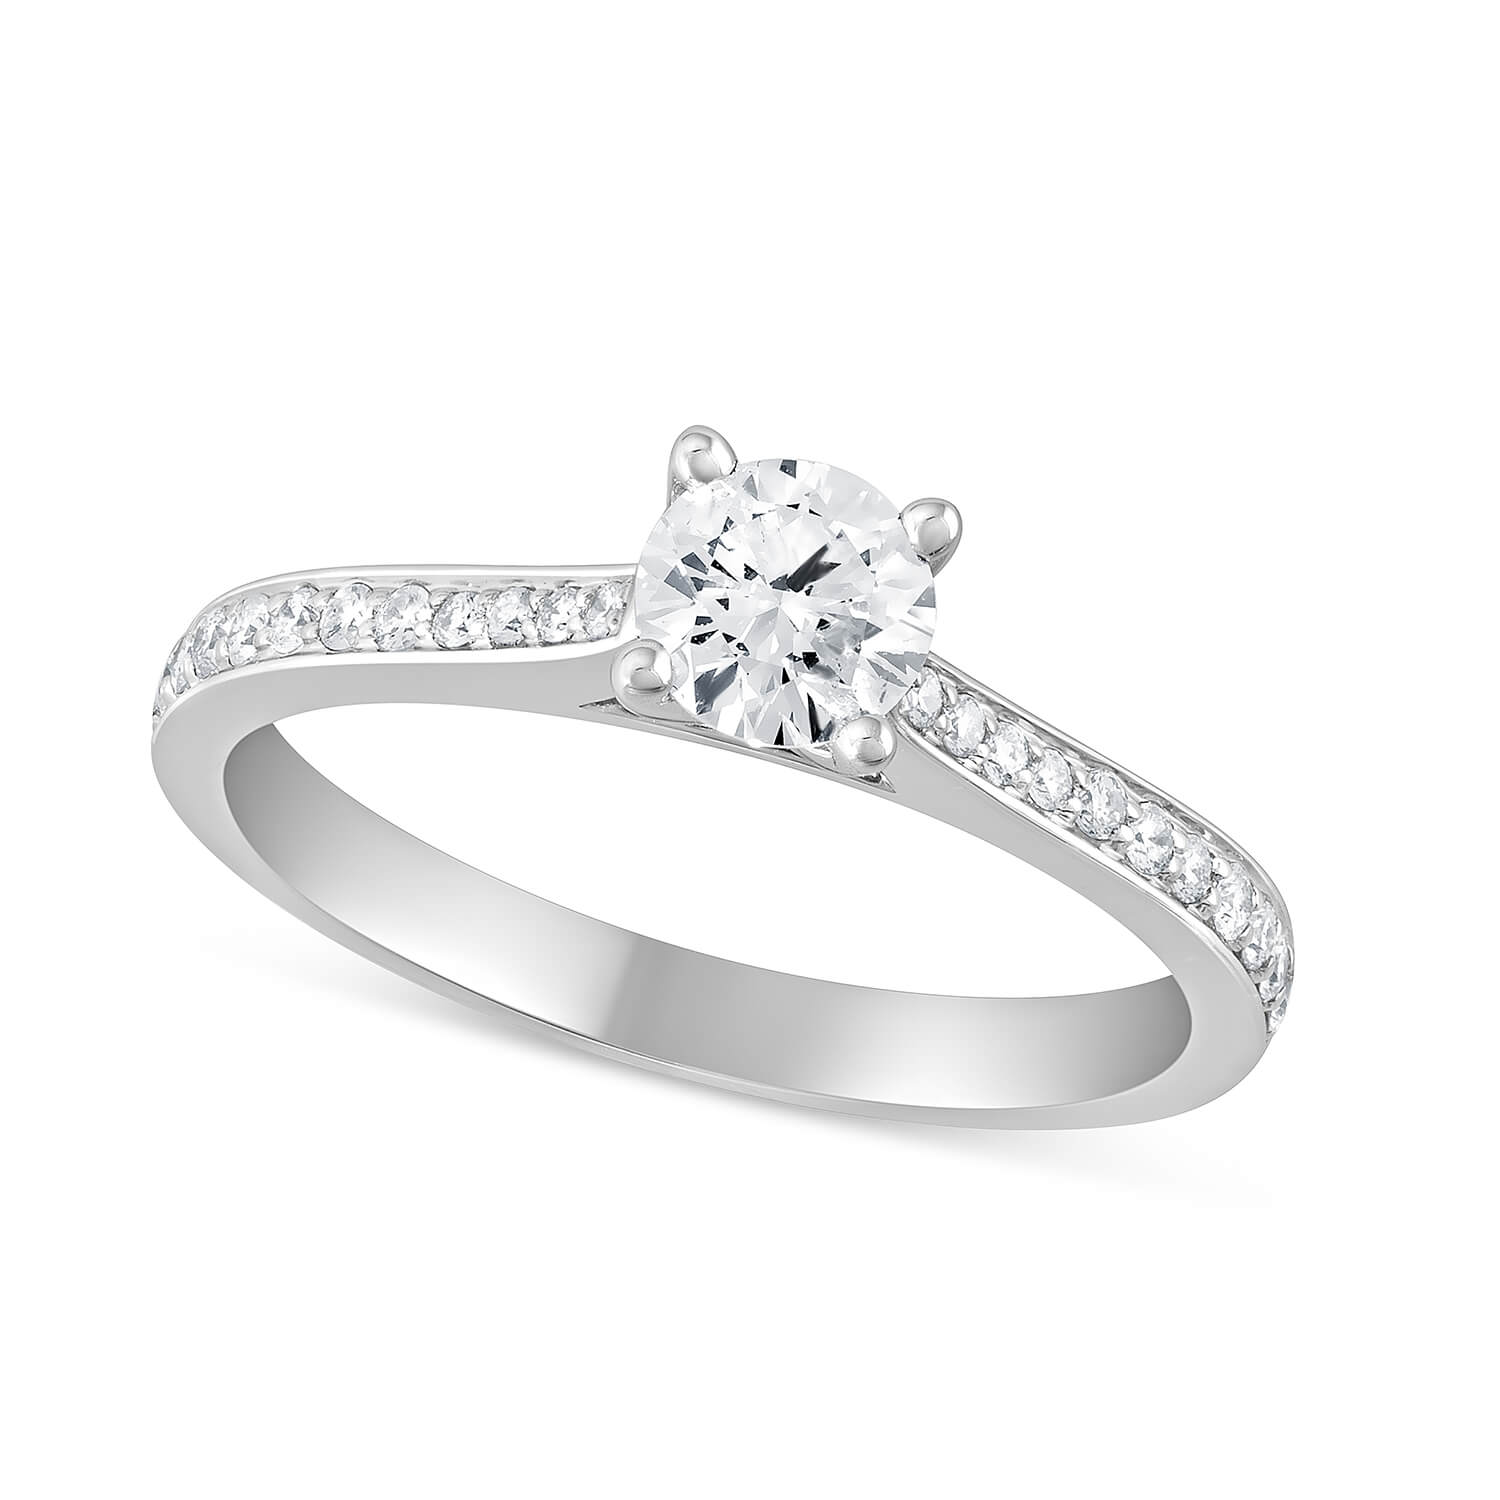 18ct White Gold Diamond Solitaire Engagement Ring